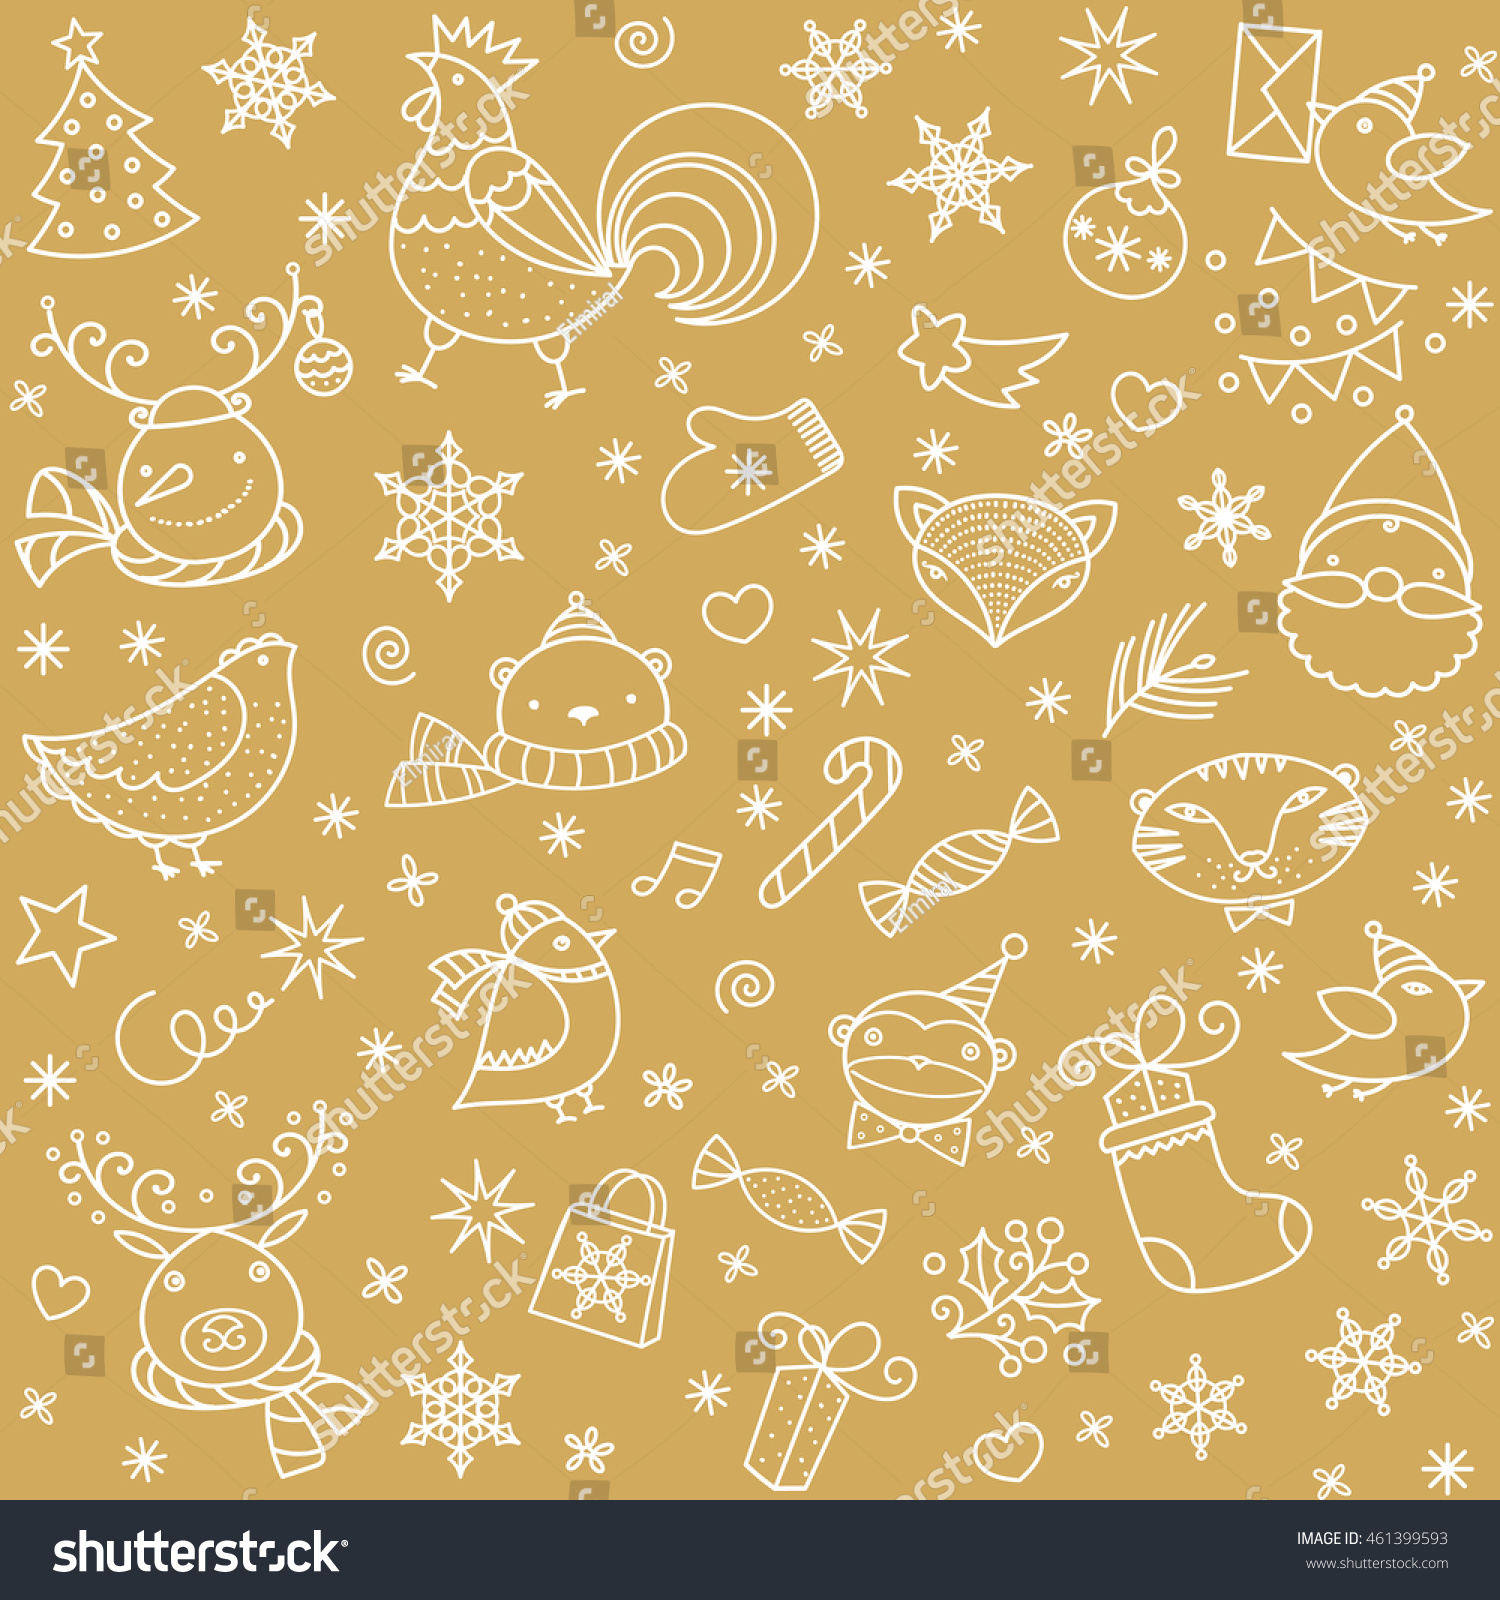 Christmas Doodle Pattern New Year Icons And Patterns Cartoon Children Animals Vector Seamless